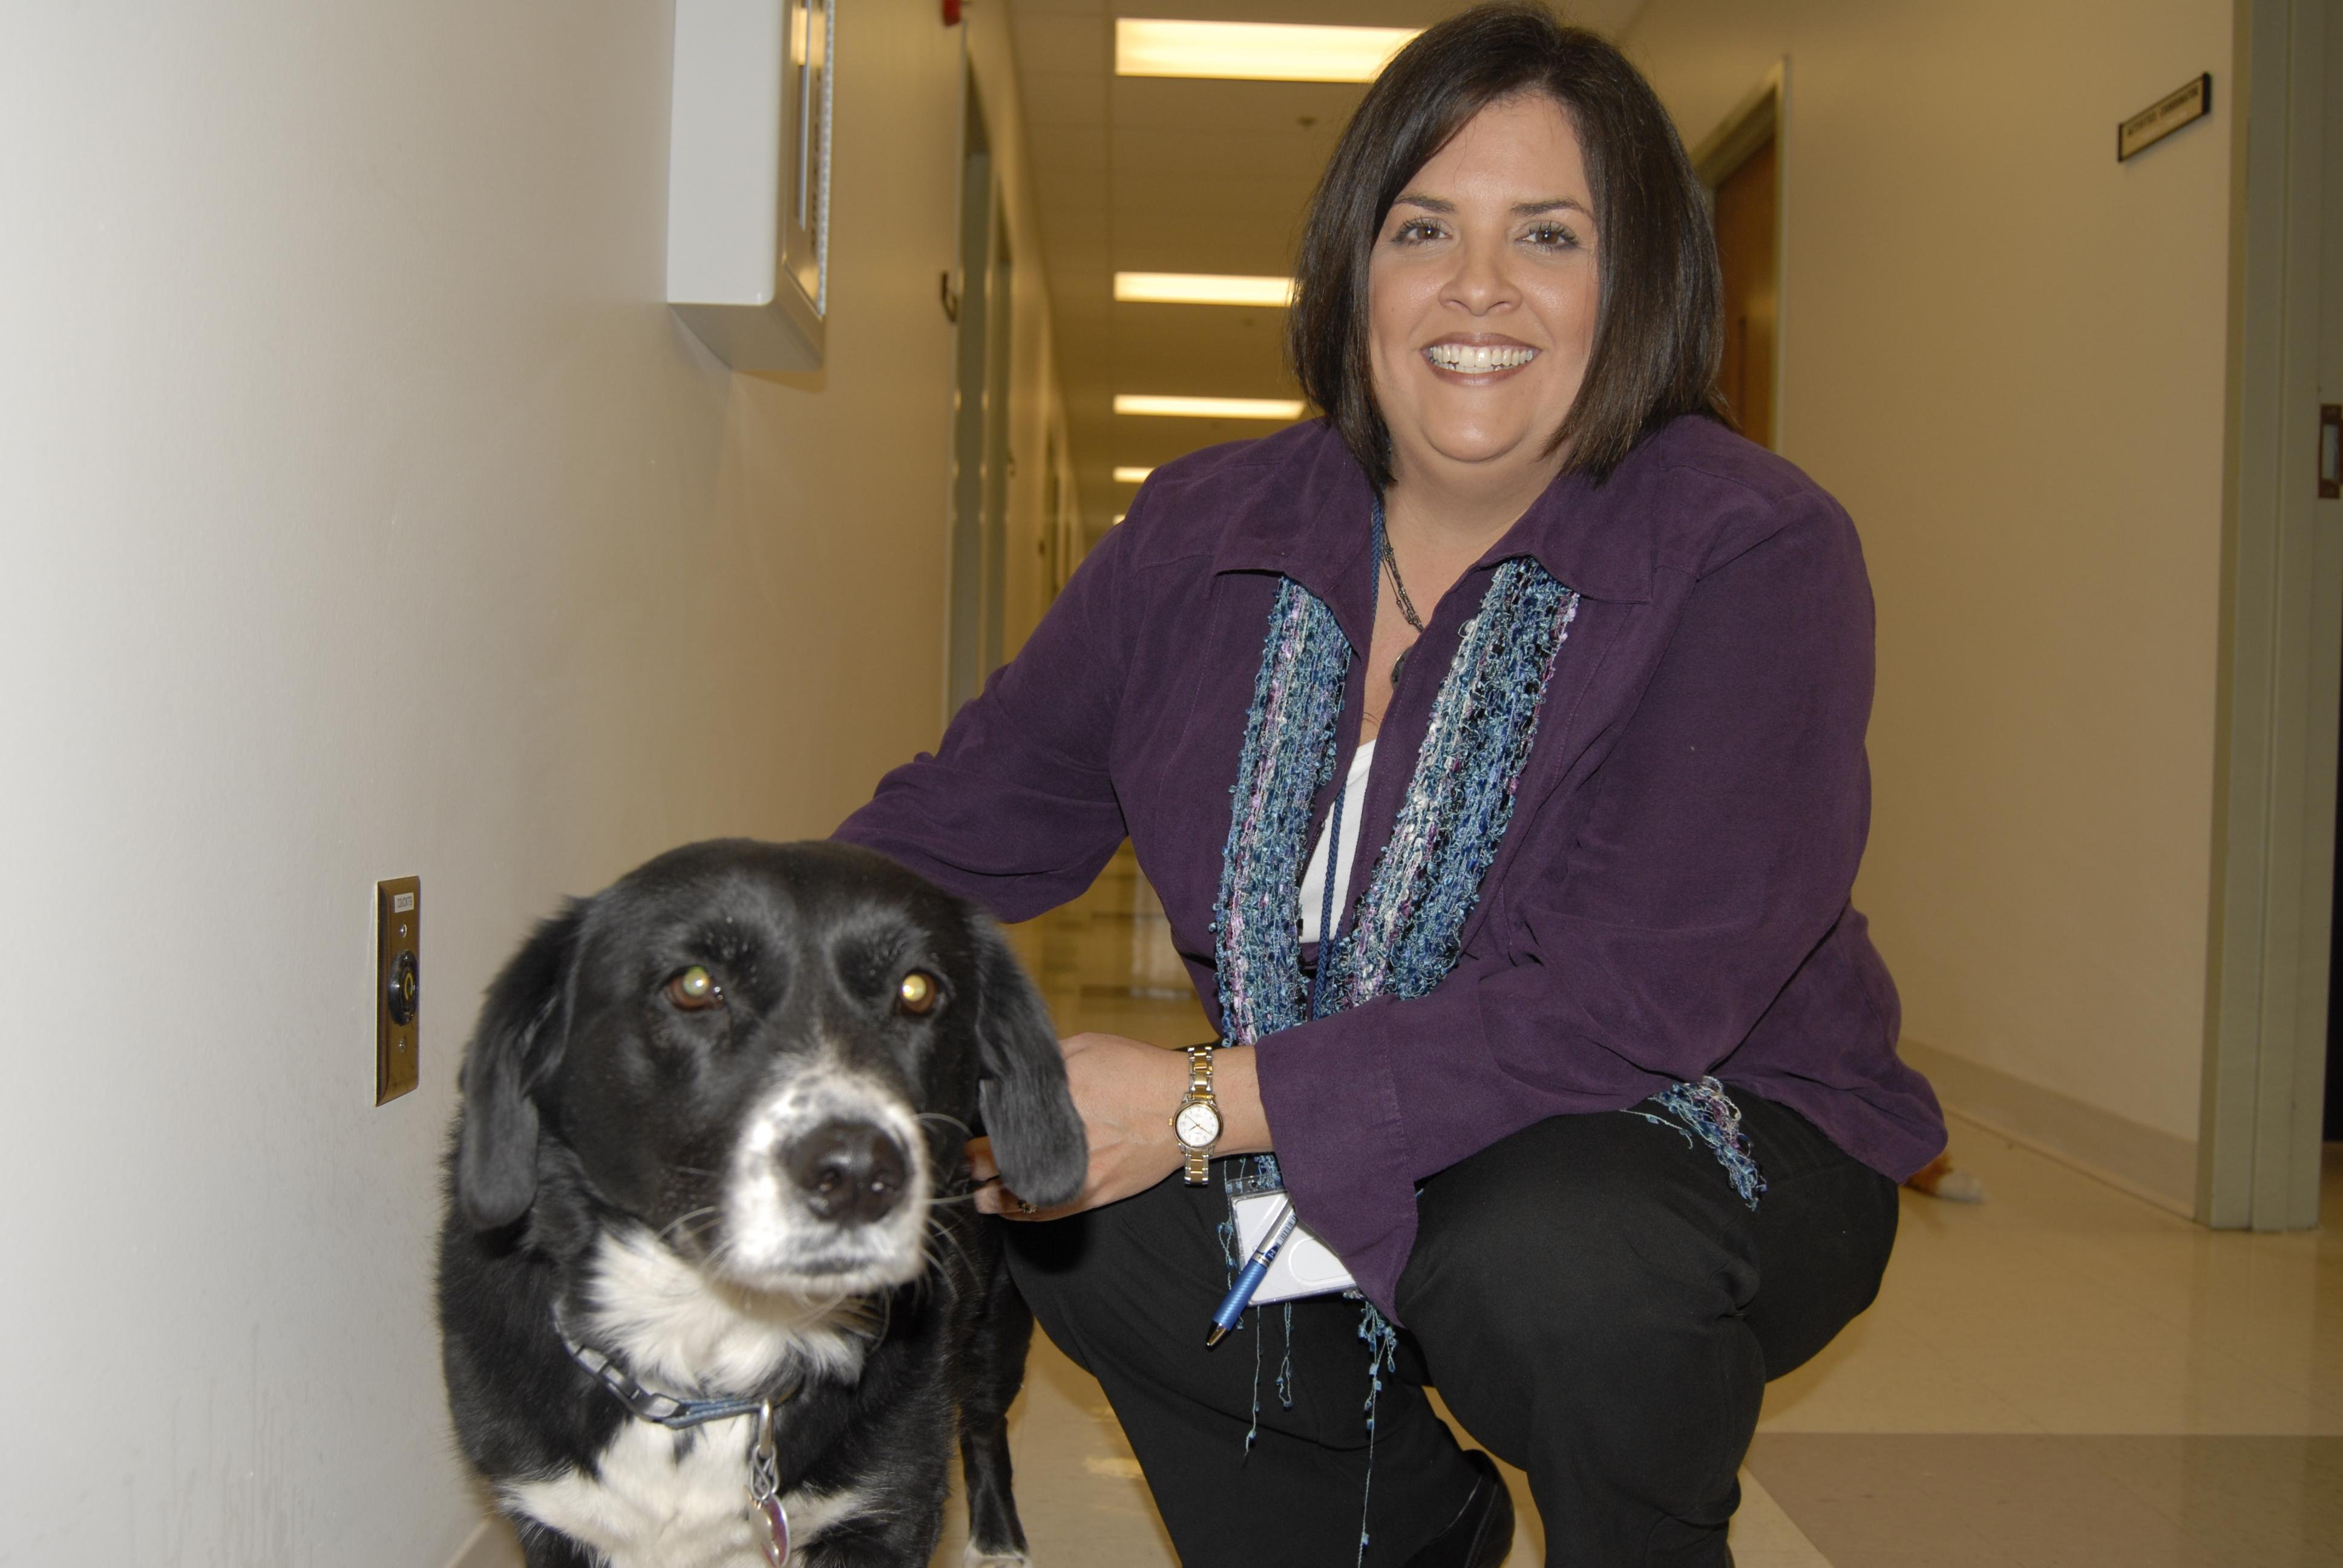 Photo by Andrea Lannom. Superintendent Stephanie Bond shows off Sadie, the center's pet.